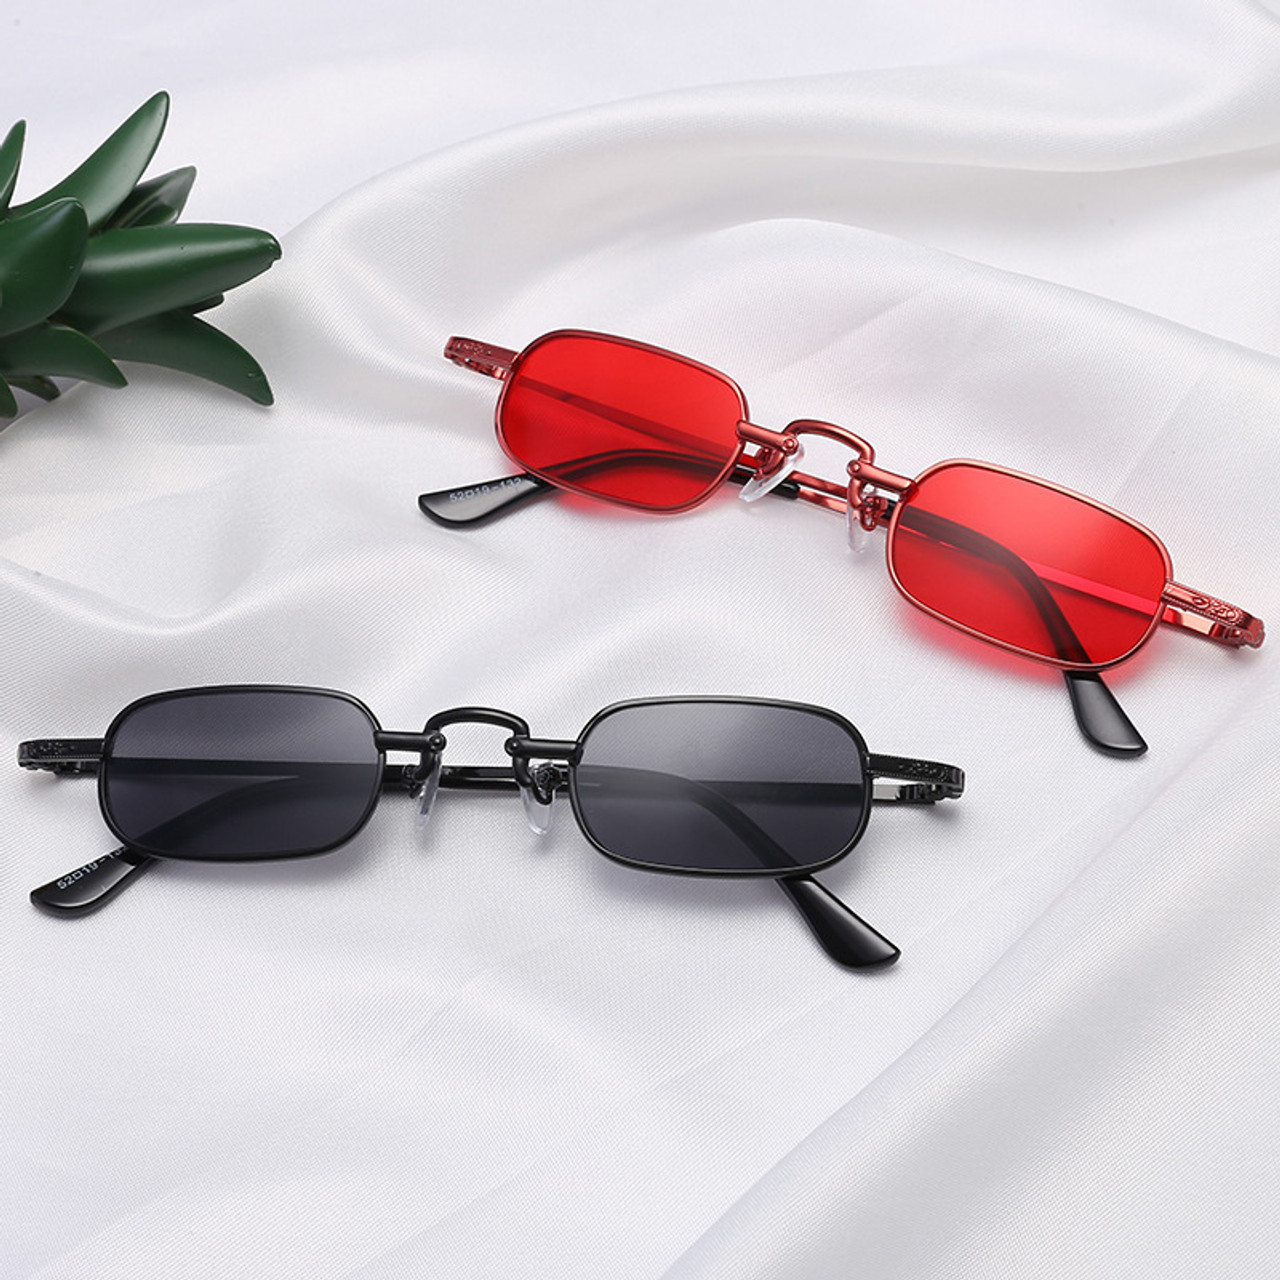 566e3f82c1 ... Retro Small Square Metal Steampunk Sunglasses Women Men Fashion Glasses  Brand Designer Vintage Sunglasses Female High ...